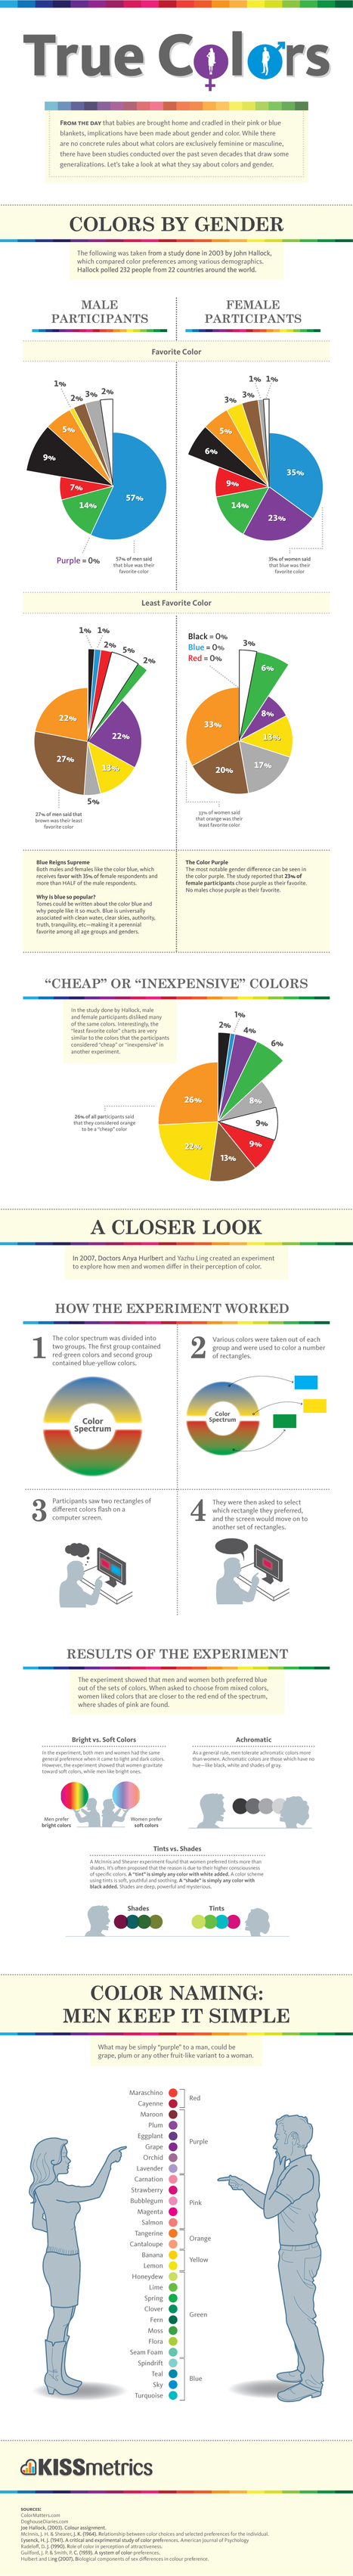 True Colors: Color Preferences By Gender | Infographics for English class | Scoop.it